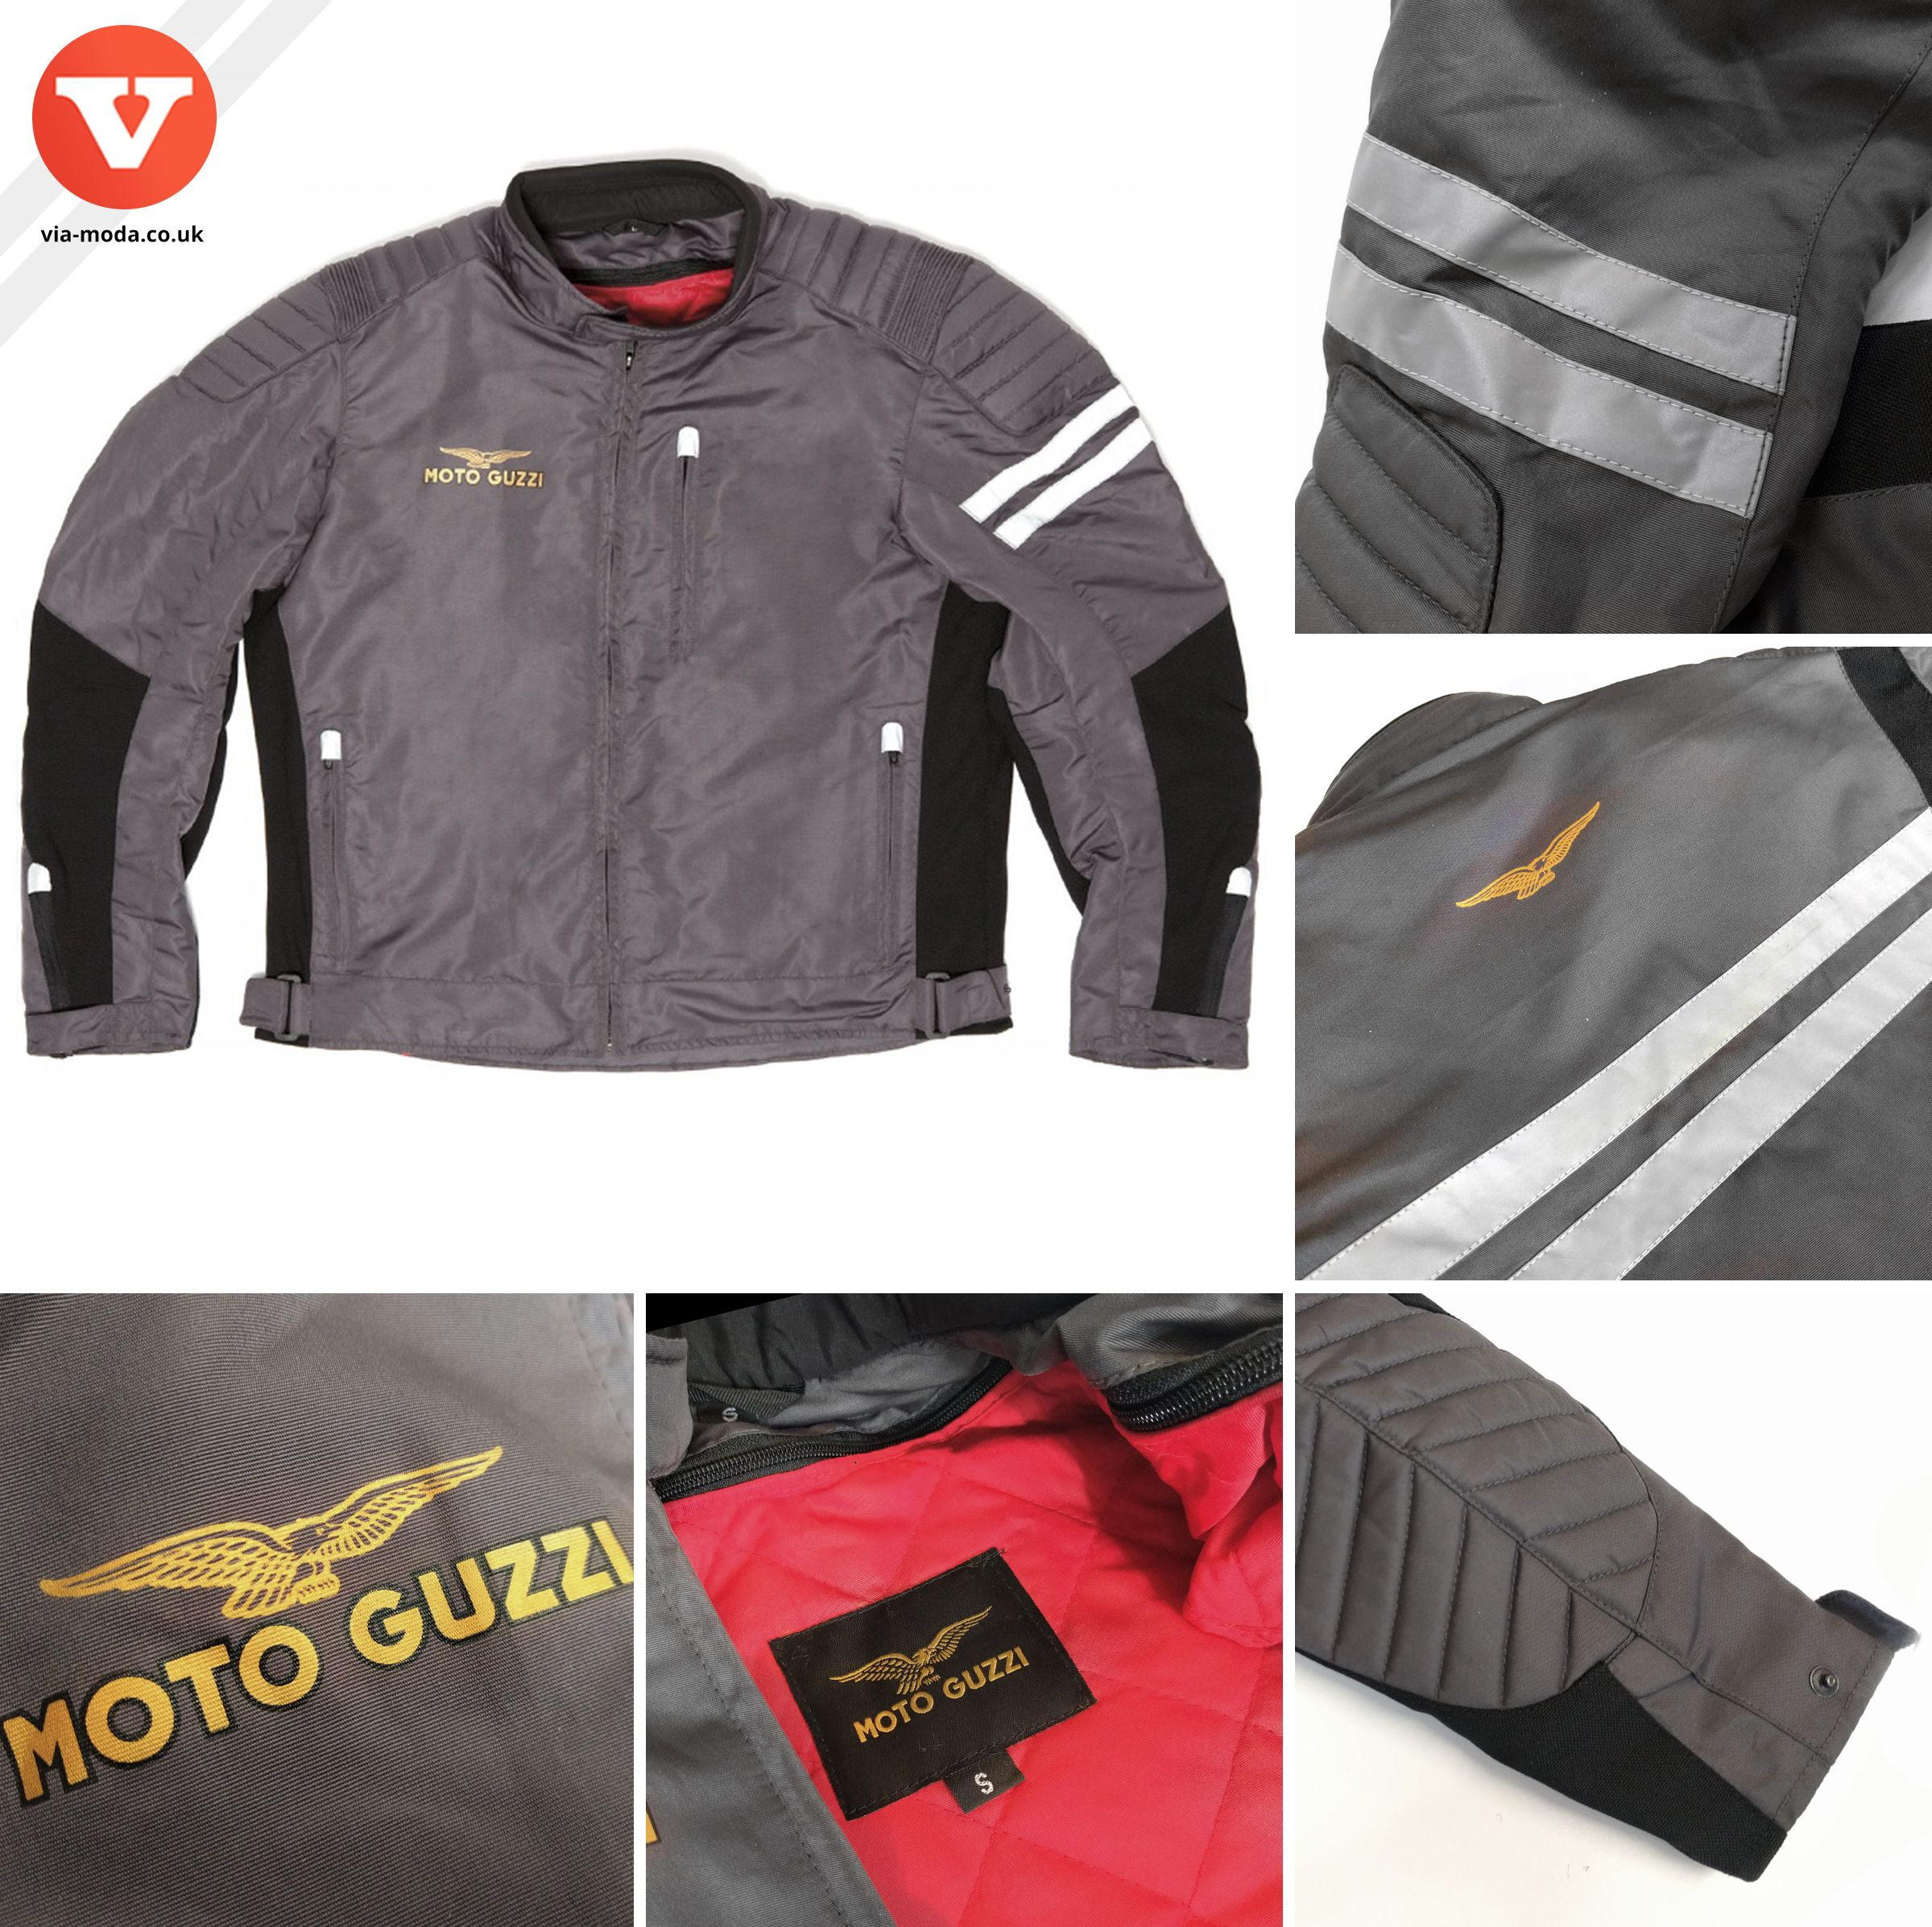 Pin by Via Moda on Gear we Sell Jackets, Summer jacket